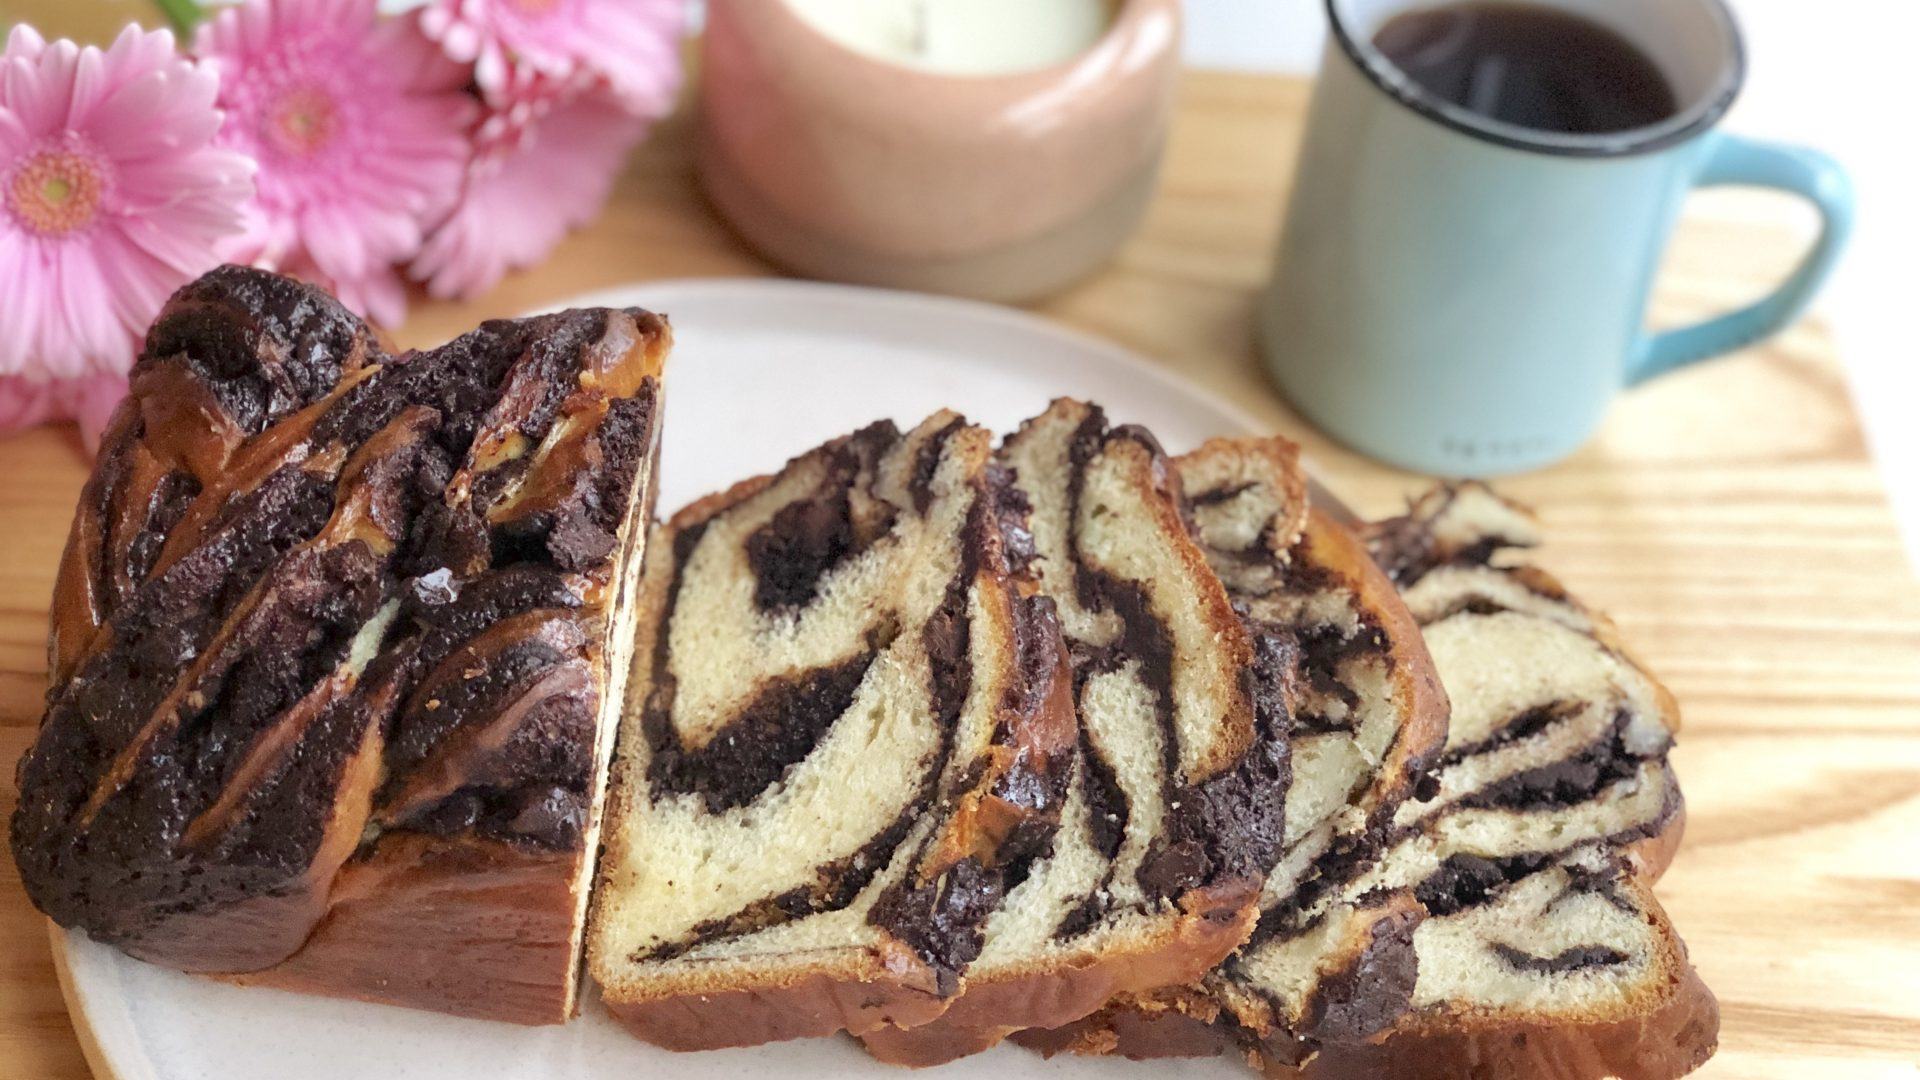 This is truly the best chocolate babka I have ever had! My all time favourite recipe.